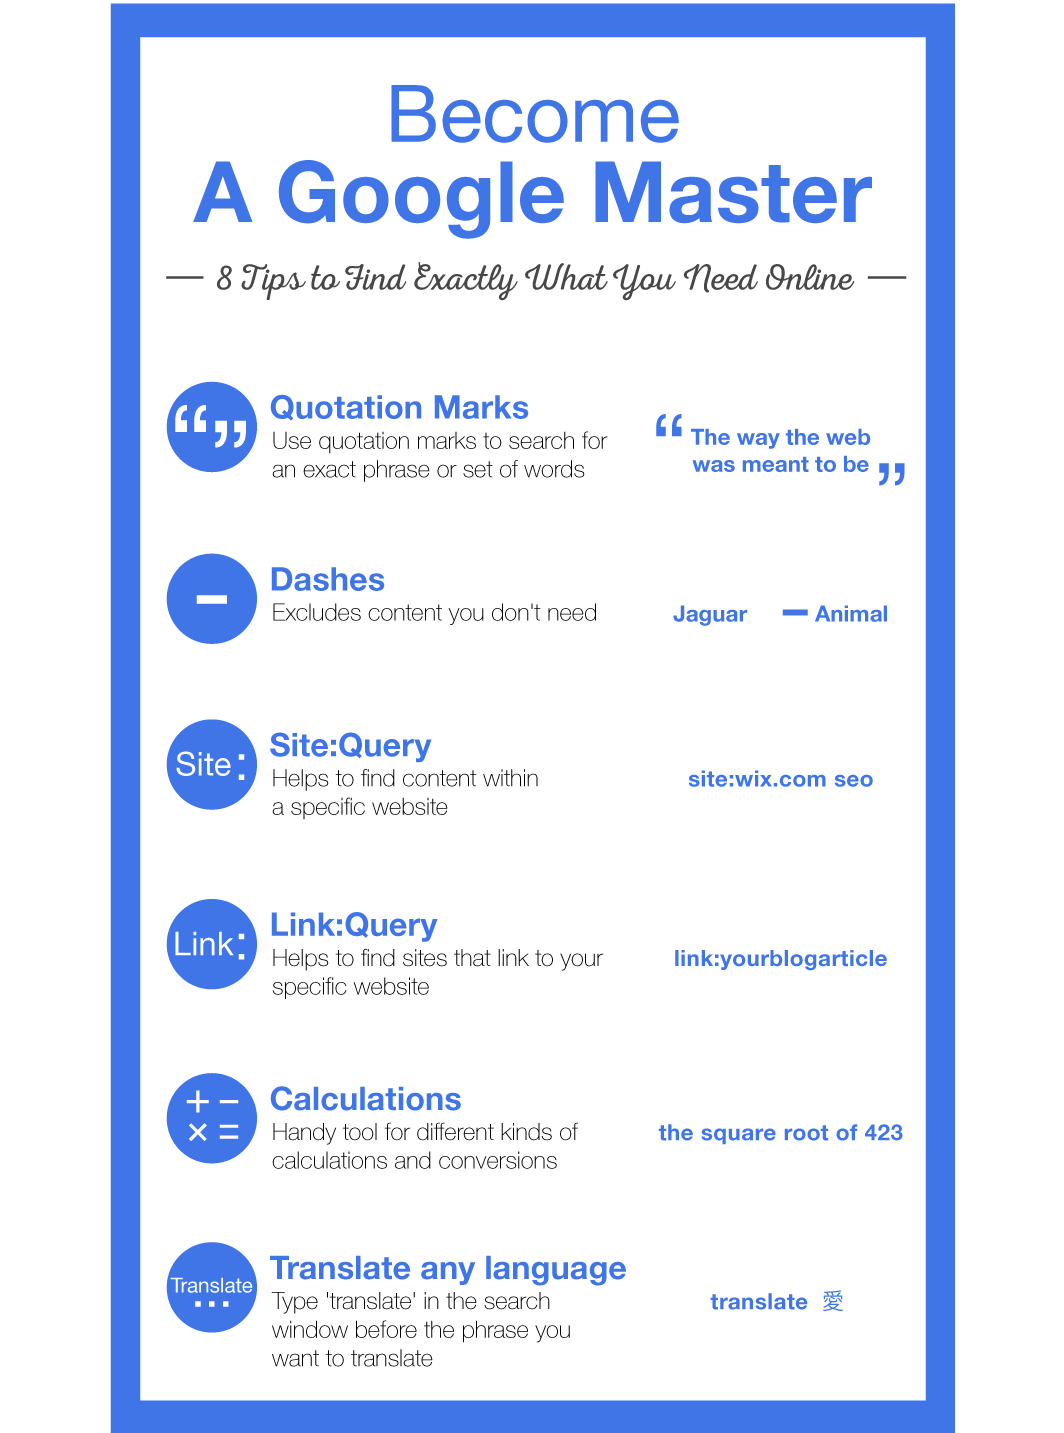 Become a Google Master – Find Exactly What You Need Online